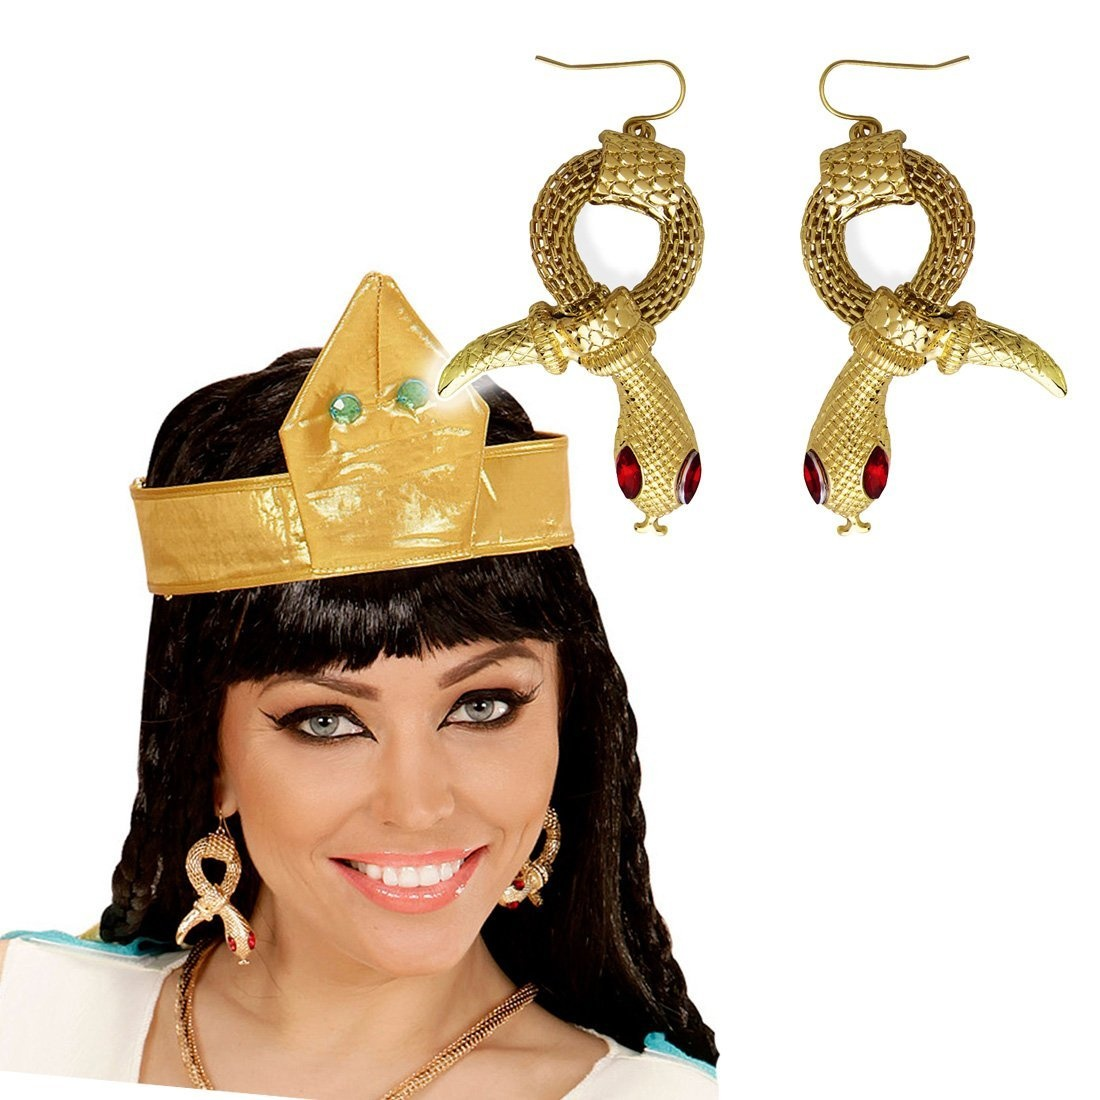 34ee872360a Snake earrings pharaoh Cleopatra ear studs Egyptian jewellery Egypt Queen  jewellery ancient Goddess attire Costume accessories ladies